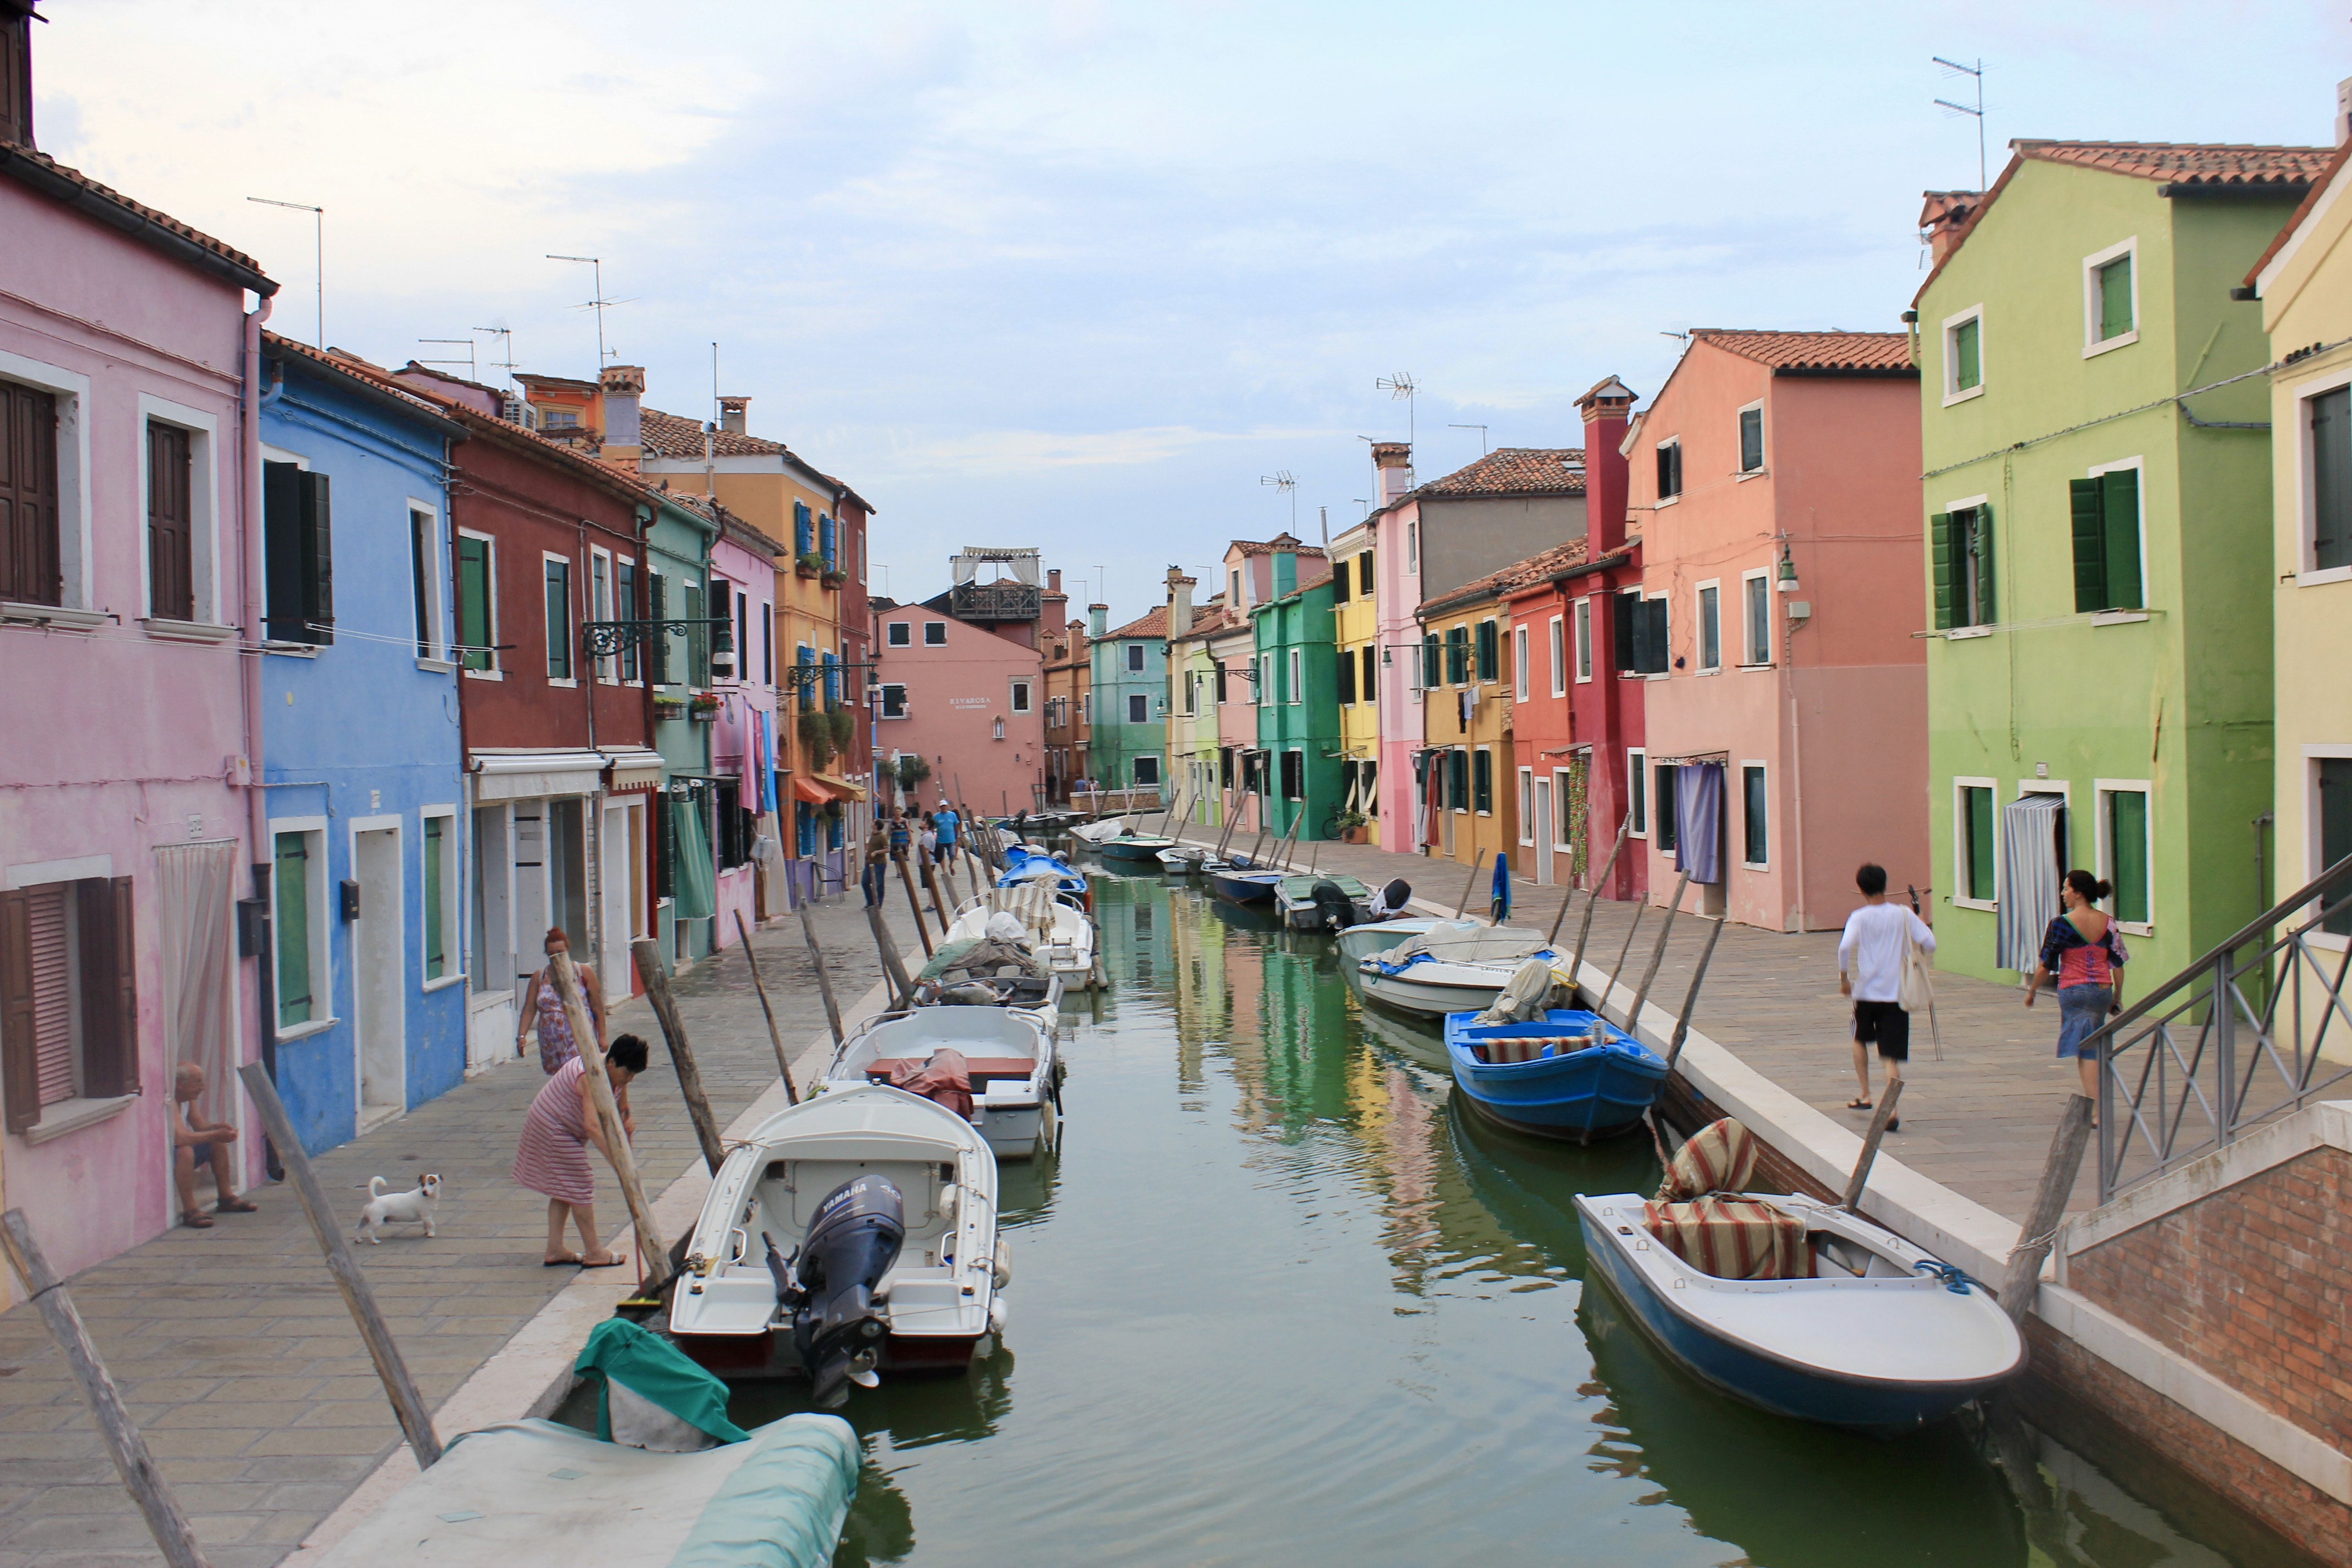 View of pastel-colored houses along a canal lined with small boats in Italy.